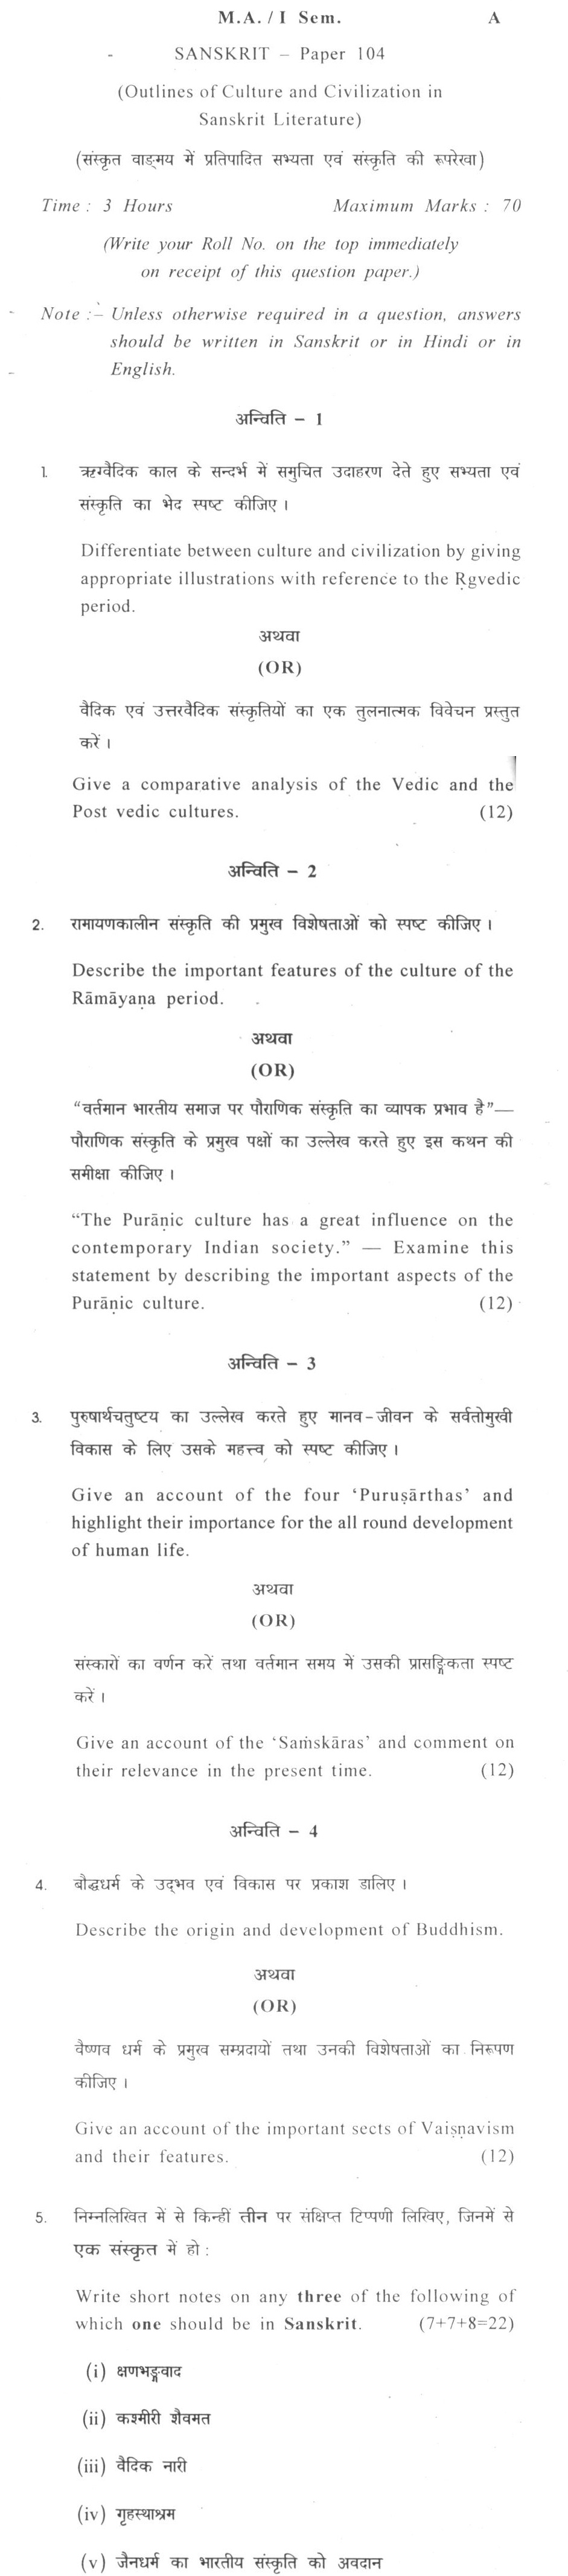 DU SOL M.A. Sanskrit Question Paper - I Semester Outlines of Culture And Civilization in Sanskrit Literature - Paper 104